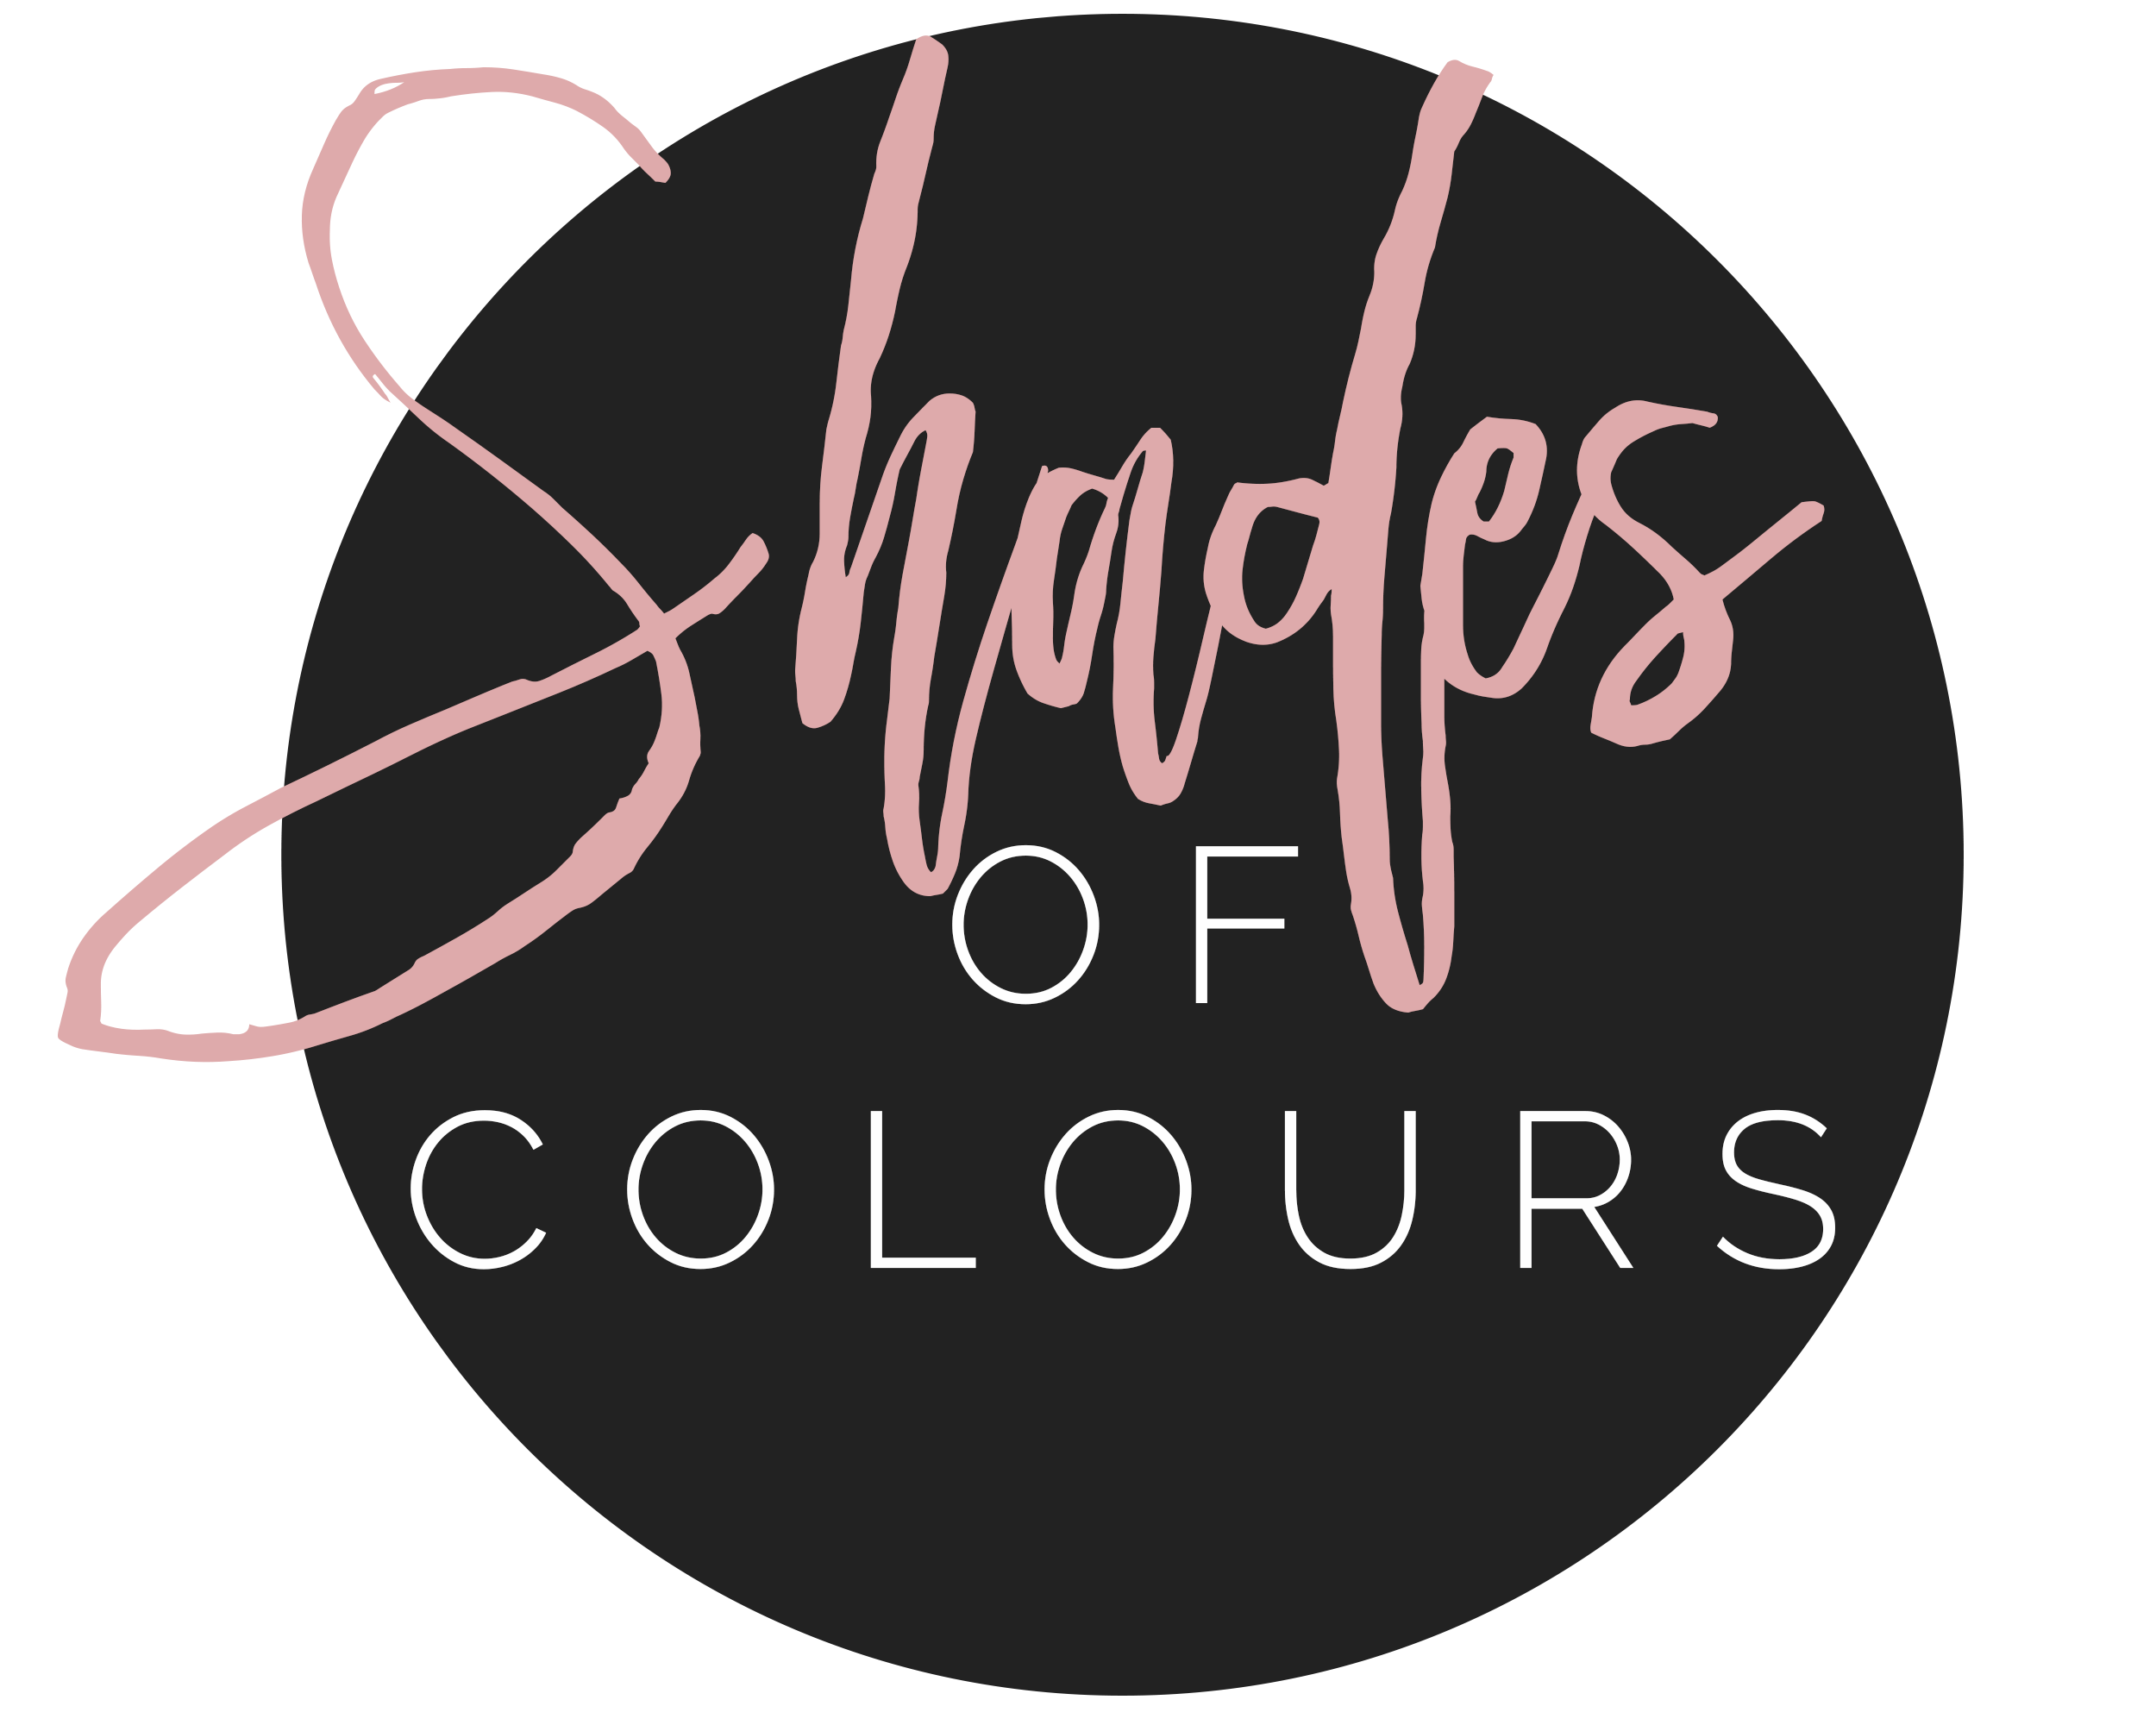 shades-of-colors-absolutely-proposals-and-romantic-events-calgary-proposal-planner-ideas